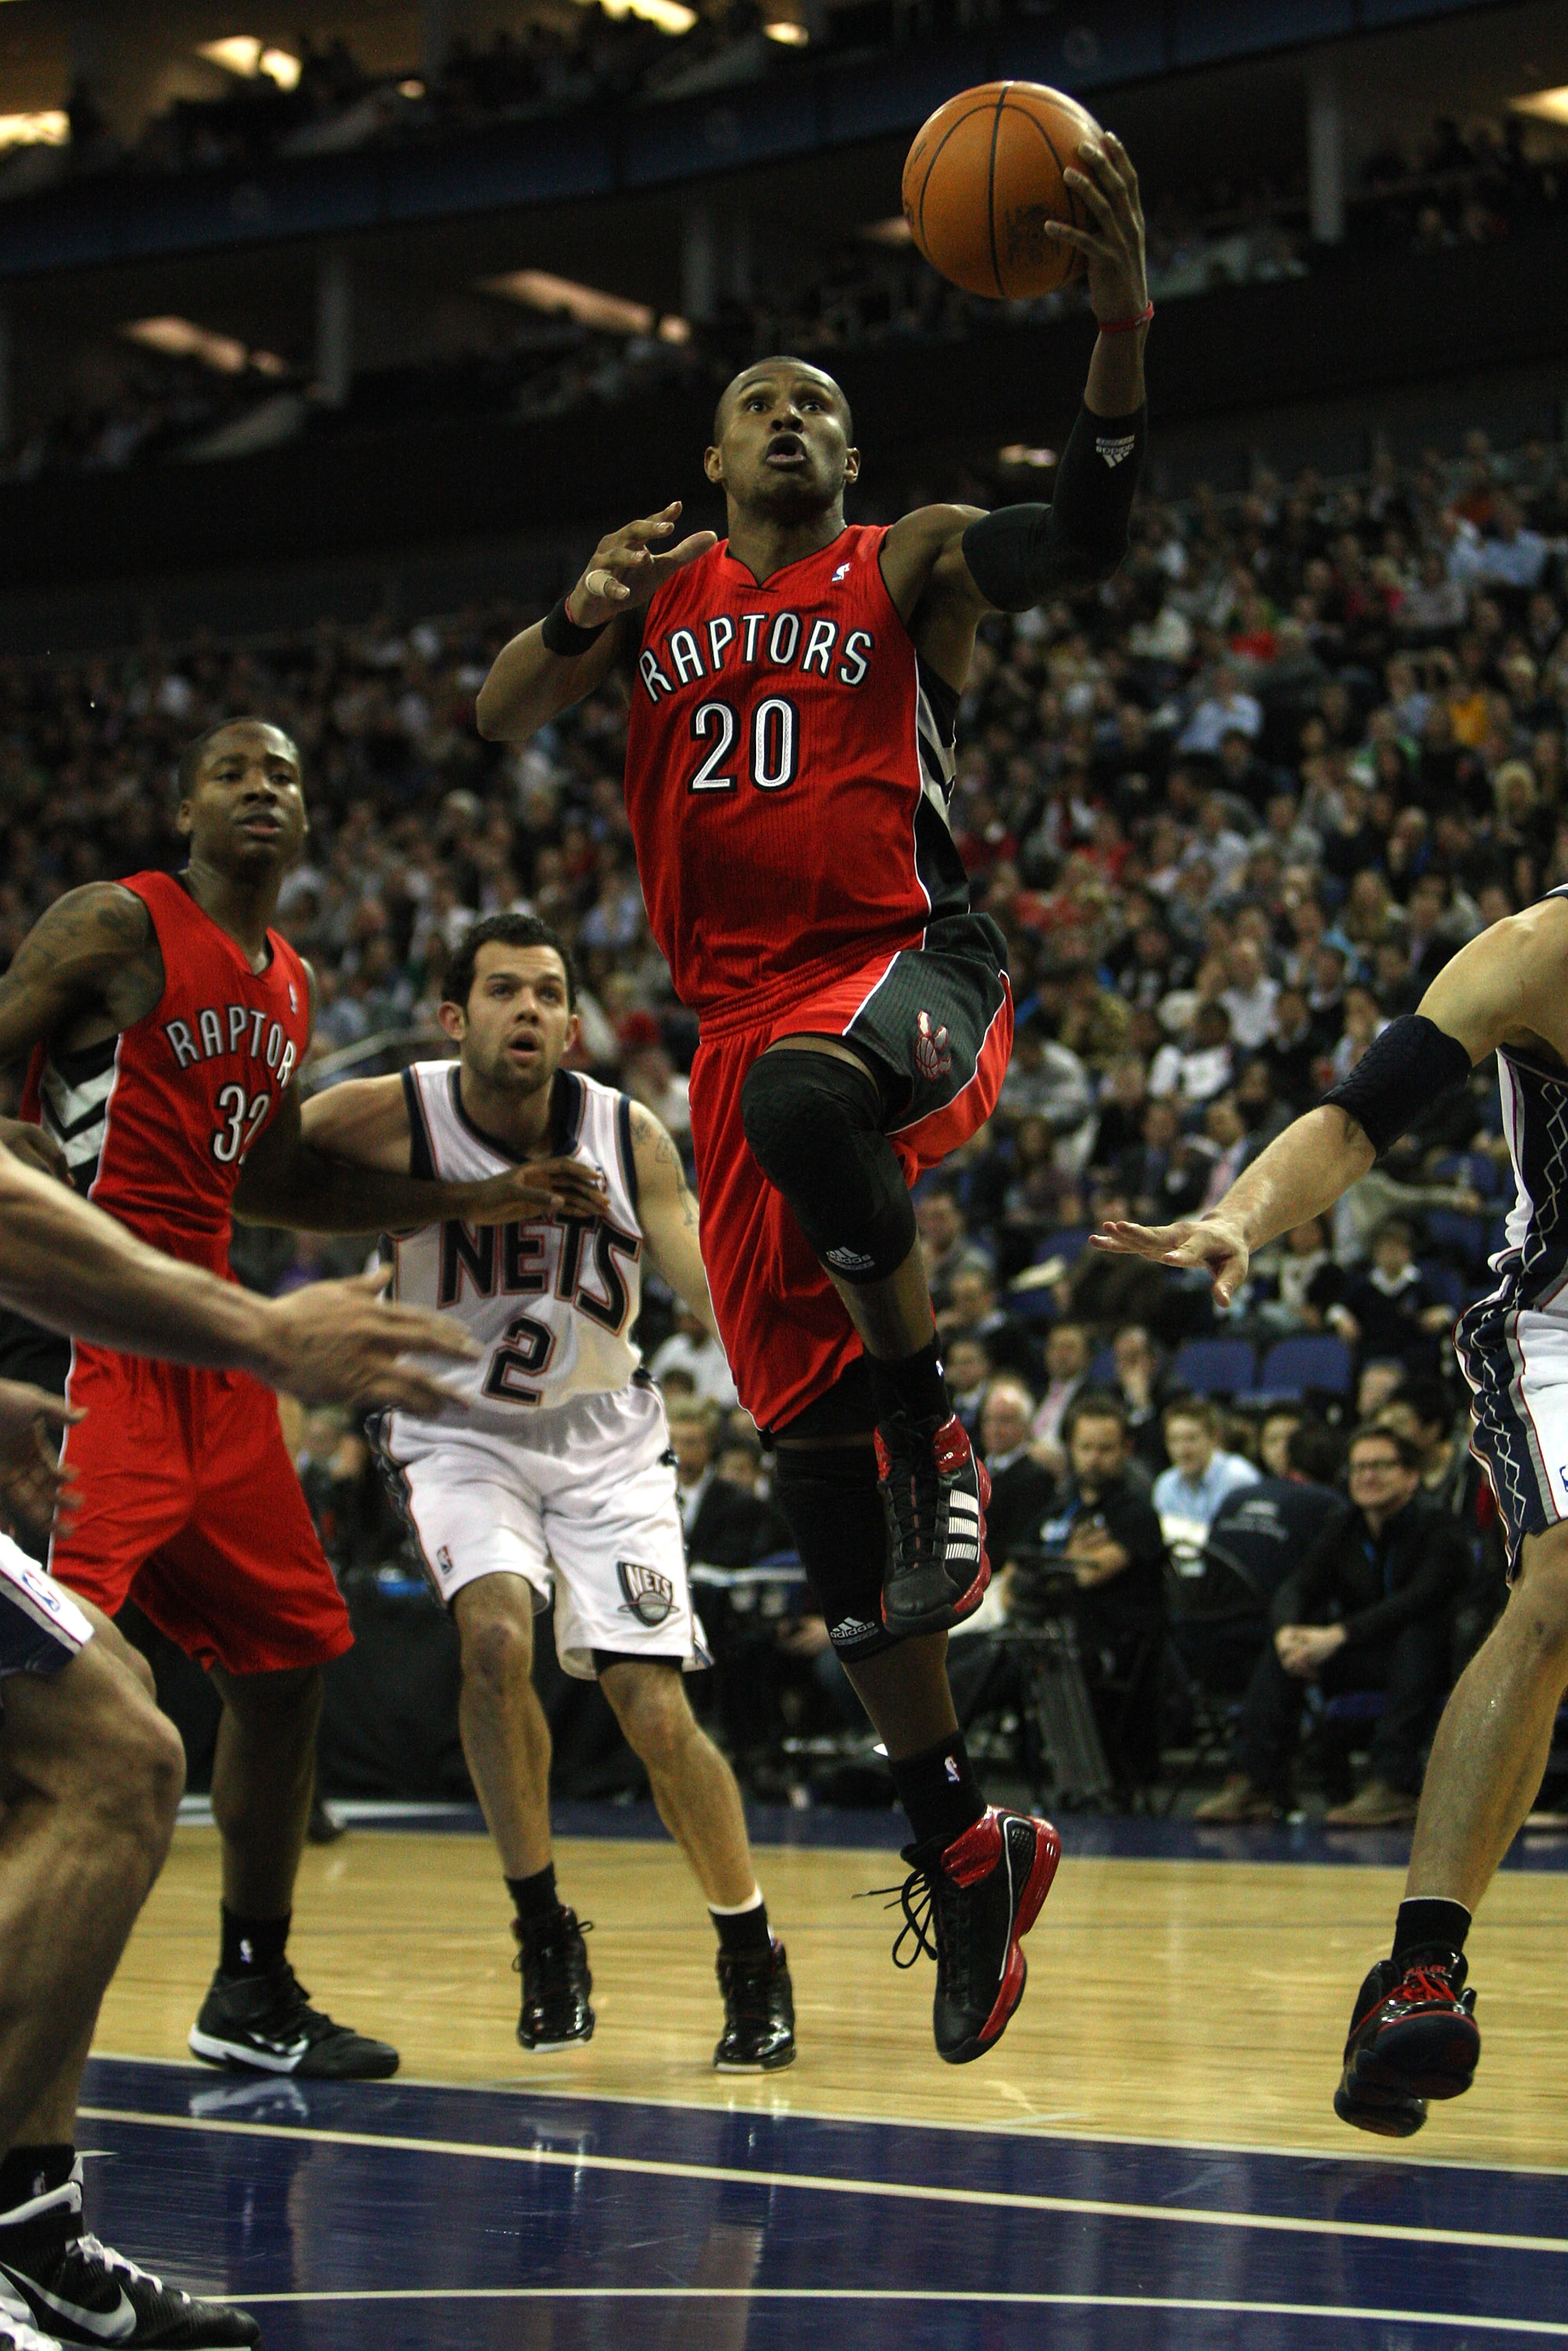 LONDON, ENGLAND - MARCH 04:  #20 Leandro Barbosa of the Raptors scores during the NBA match between New Jersey Nets and the Toronto Raptors at the O2 Arena on March 4, 2011 in London, England. NOTE TO USER: User expressly acknowledges and agrees that, by